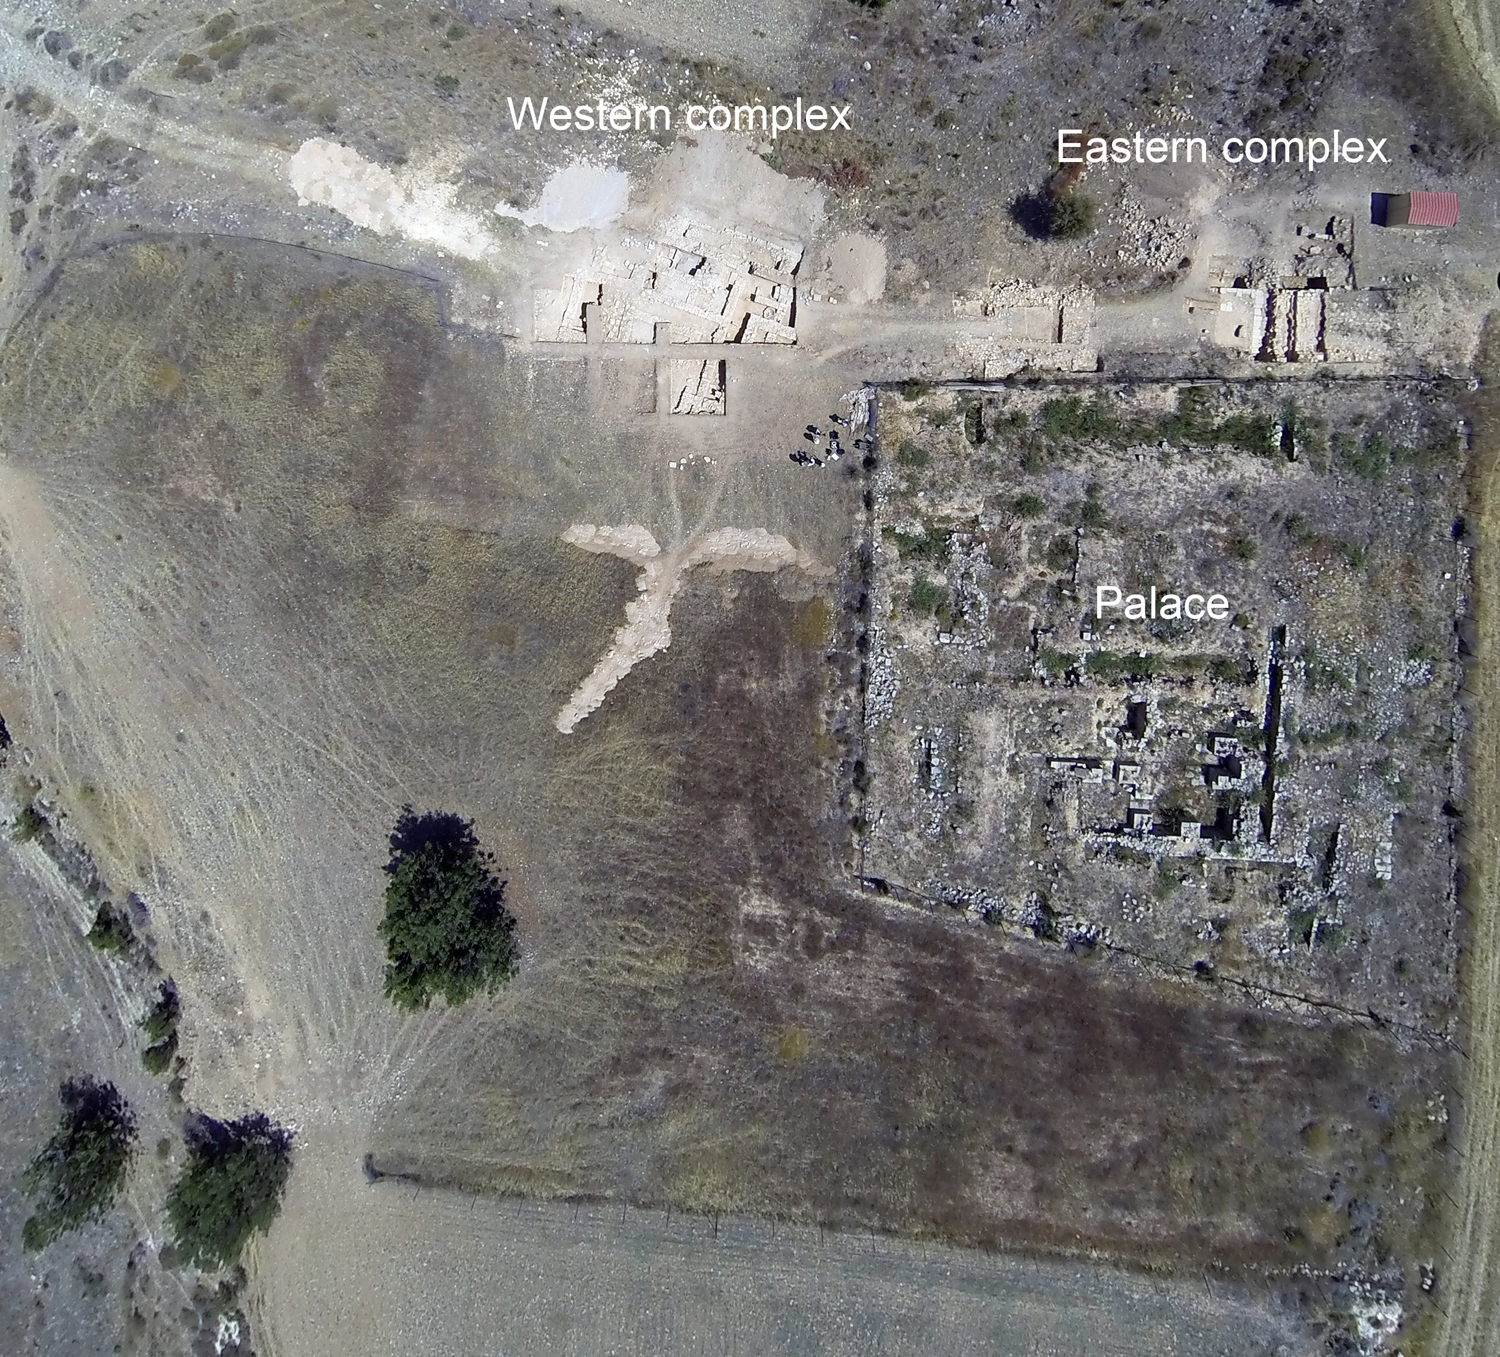 2.Aerial photo of Hadjiabdullah showing excavated areas and Western and Eastern complexes